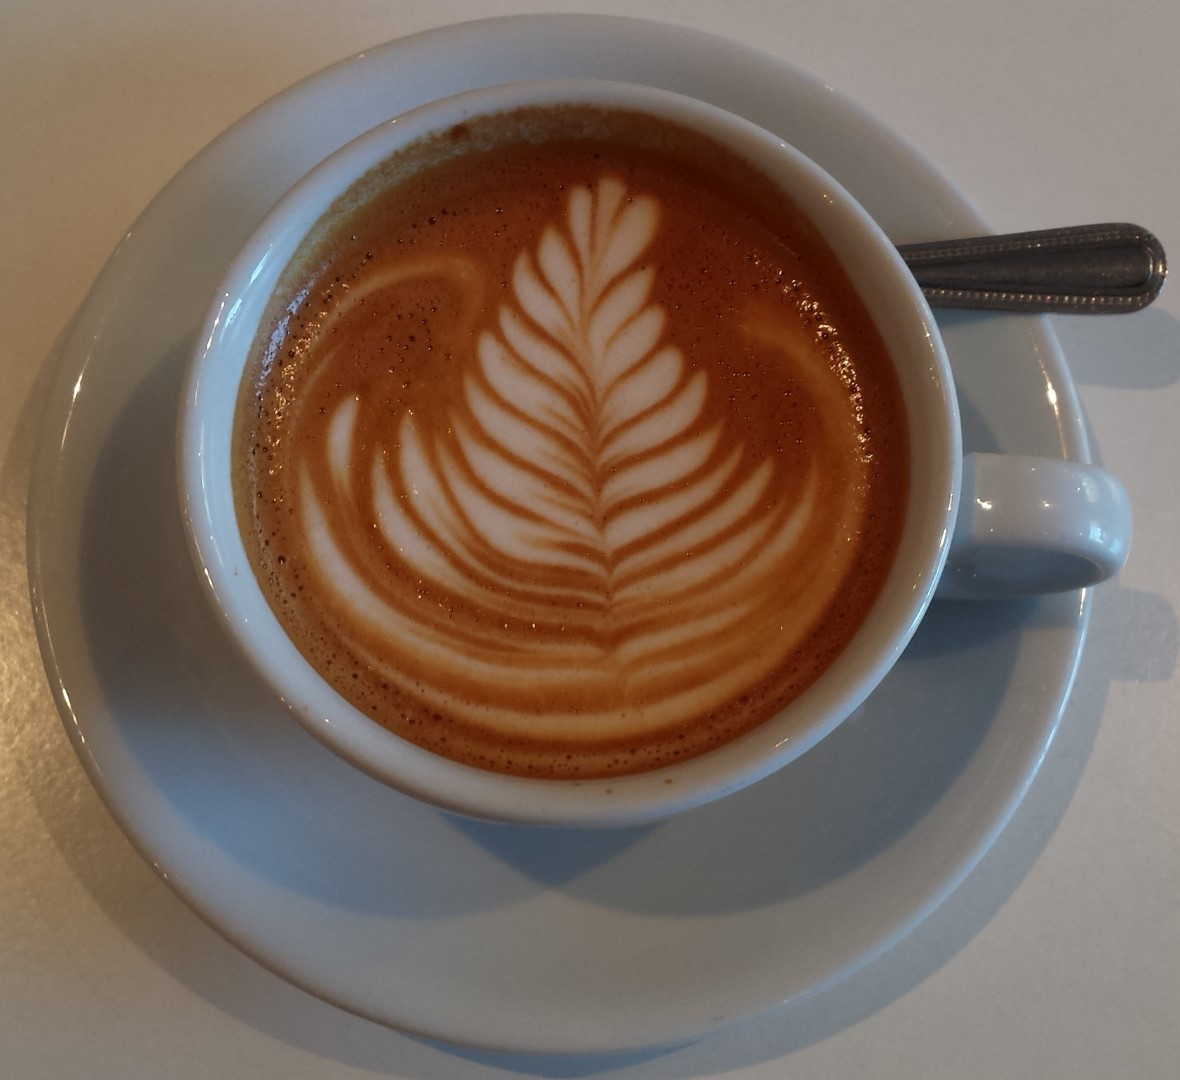 A flat white in a classic white cup seen from directly above with a multi-leaf fern motif in the latte art.